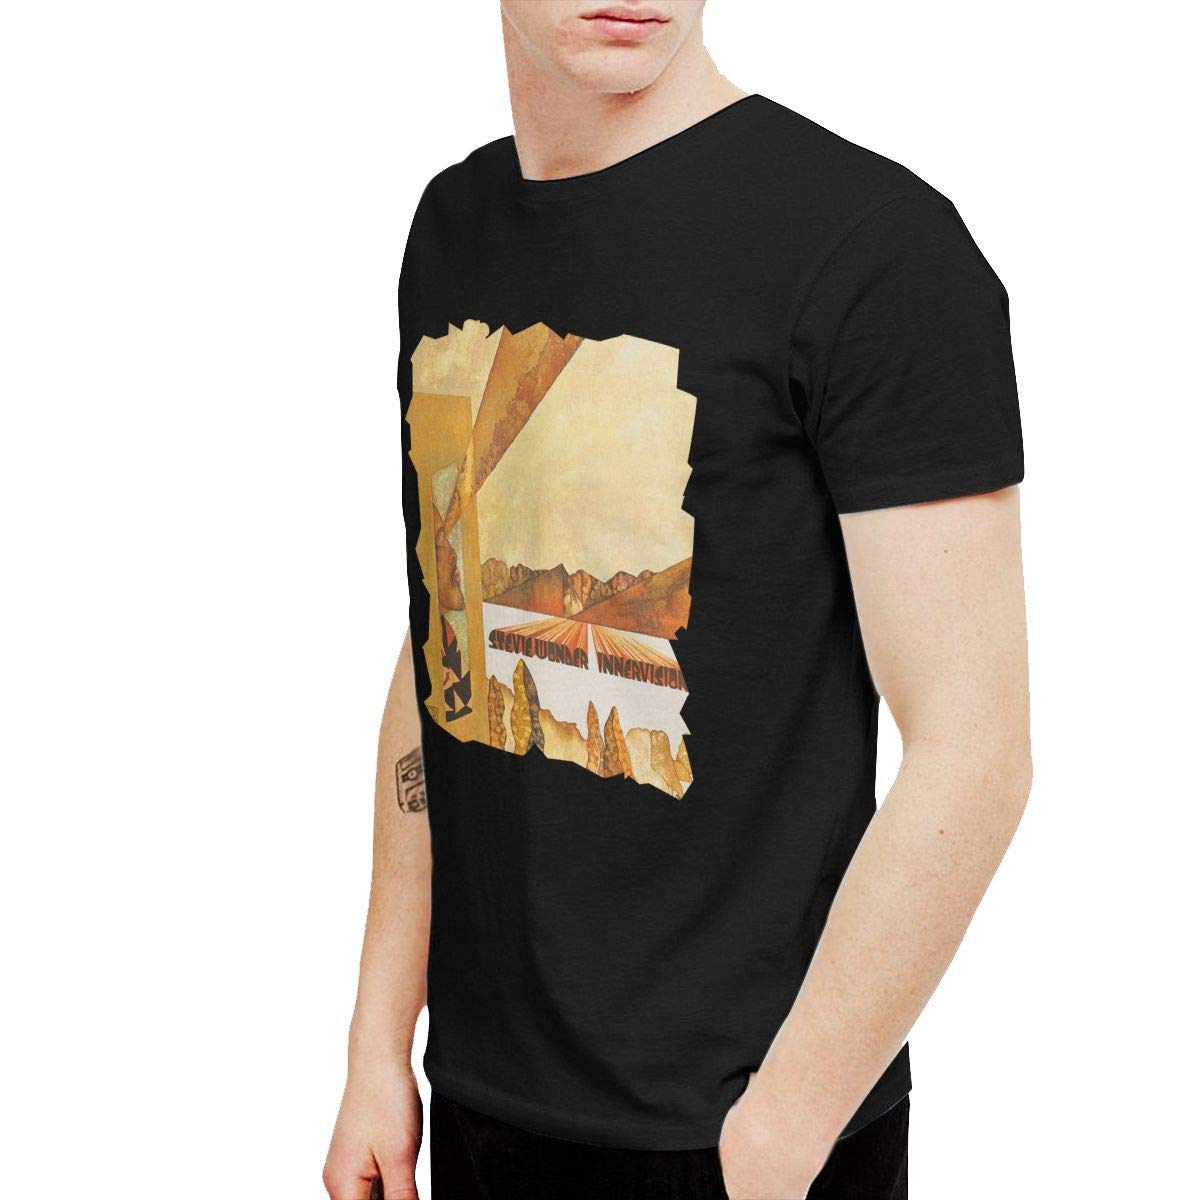 K-deio Stevie Wonder Innervisions Mens Tshirt Black